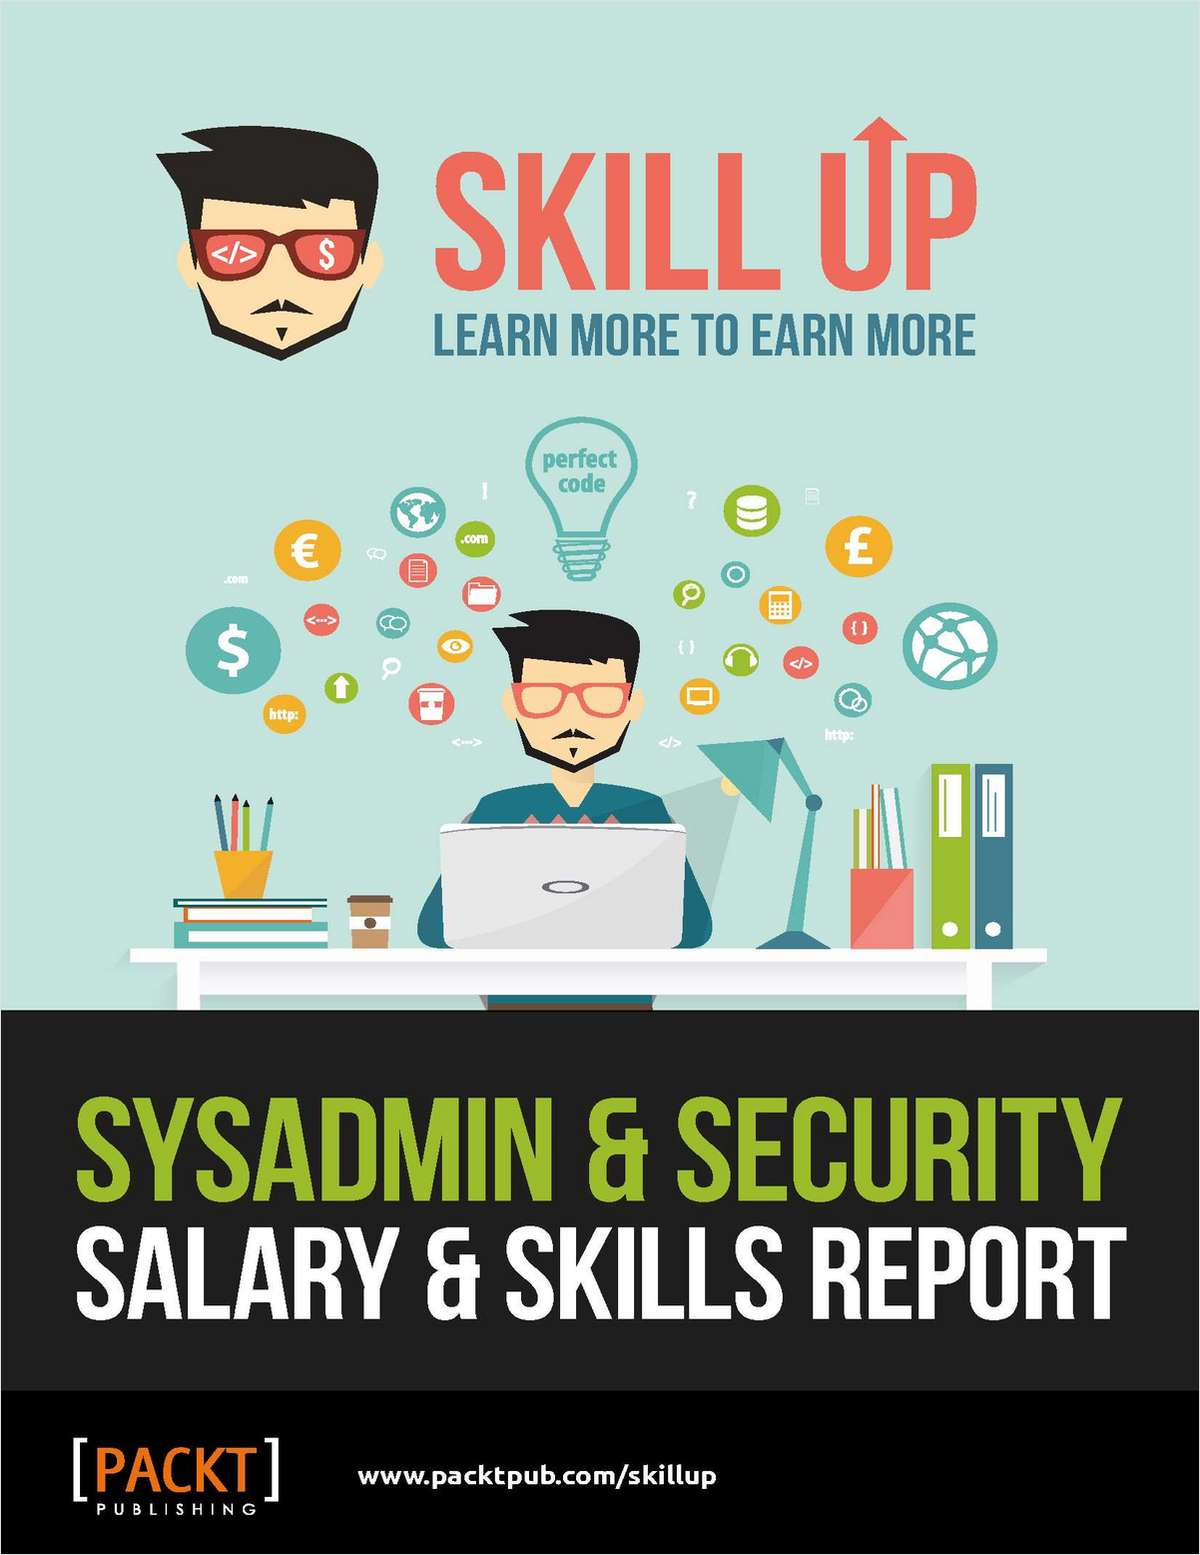 System Administration & Security - Salary & Skills Report Screenshot